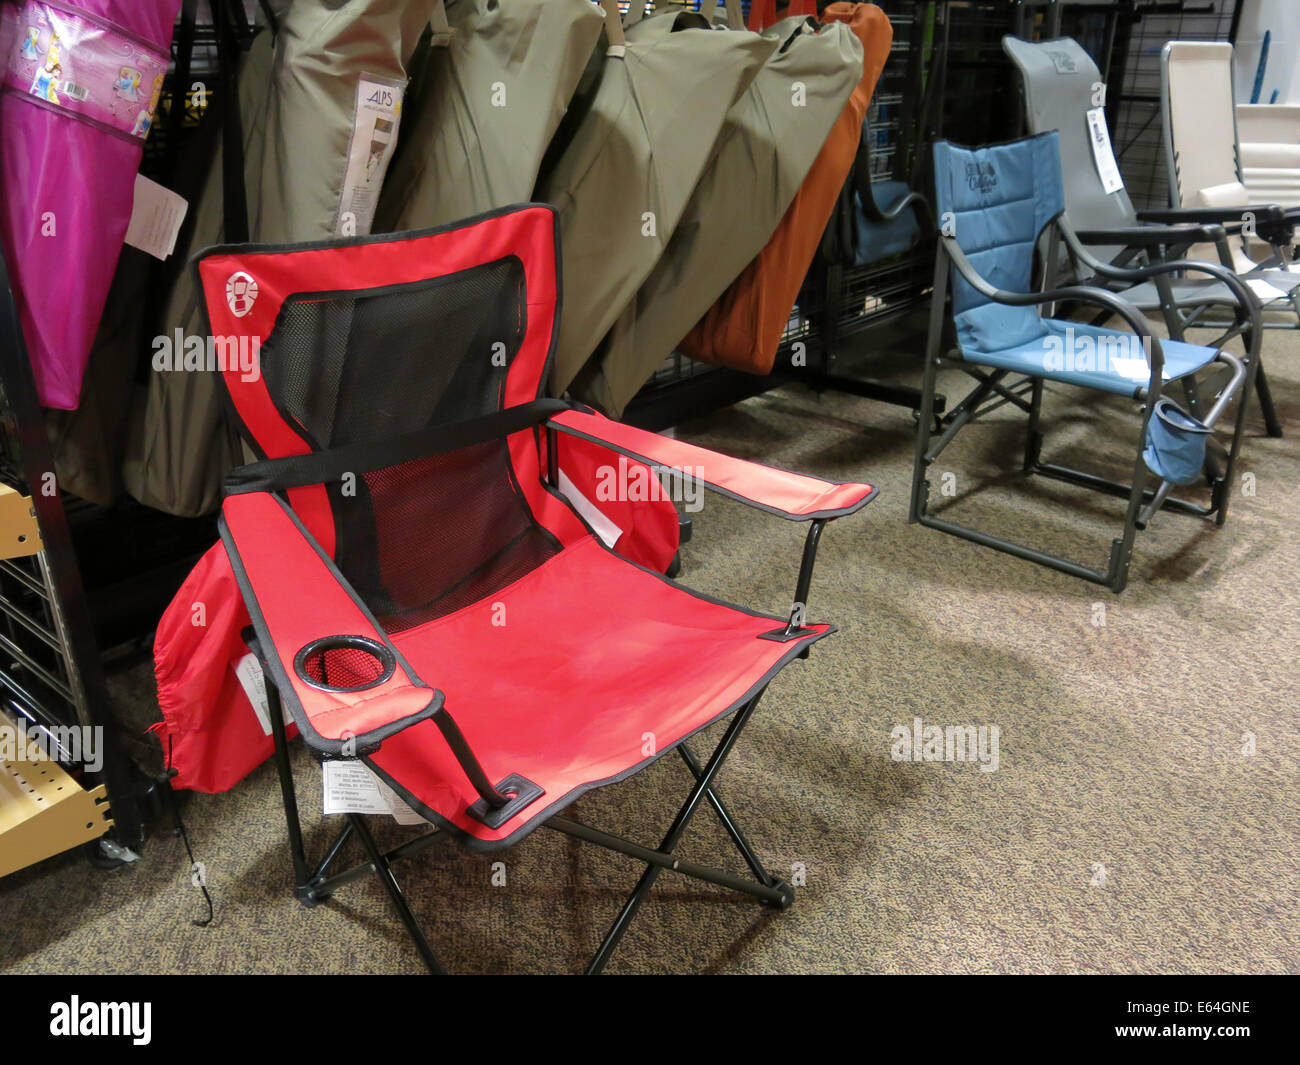 Furniture stores great falls mt - Portable Folding Camping Chairs Scheels Sporting Goods Store Great Falls Montana Usa